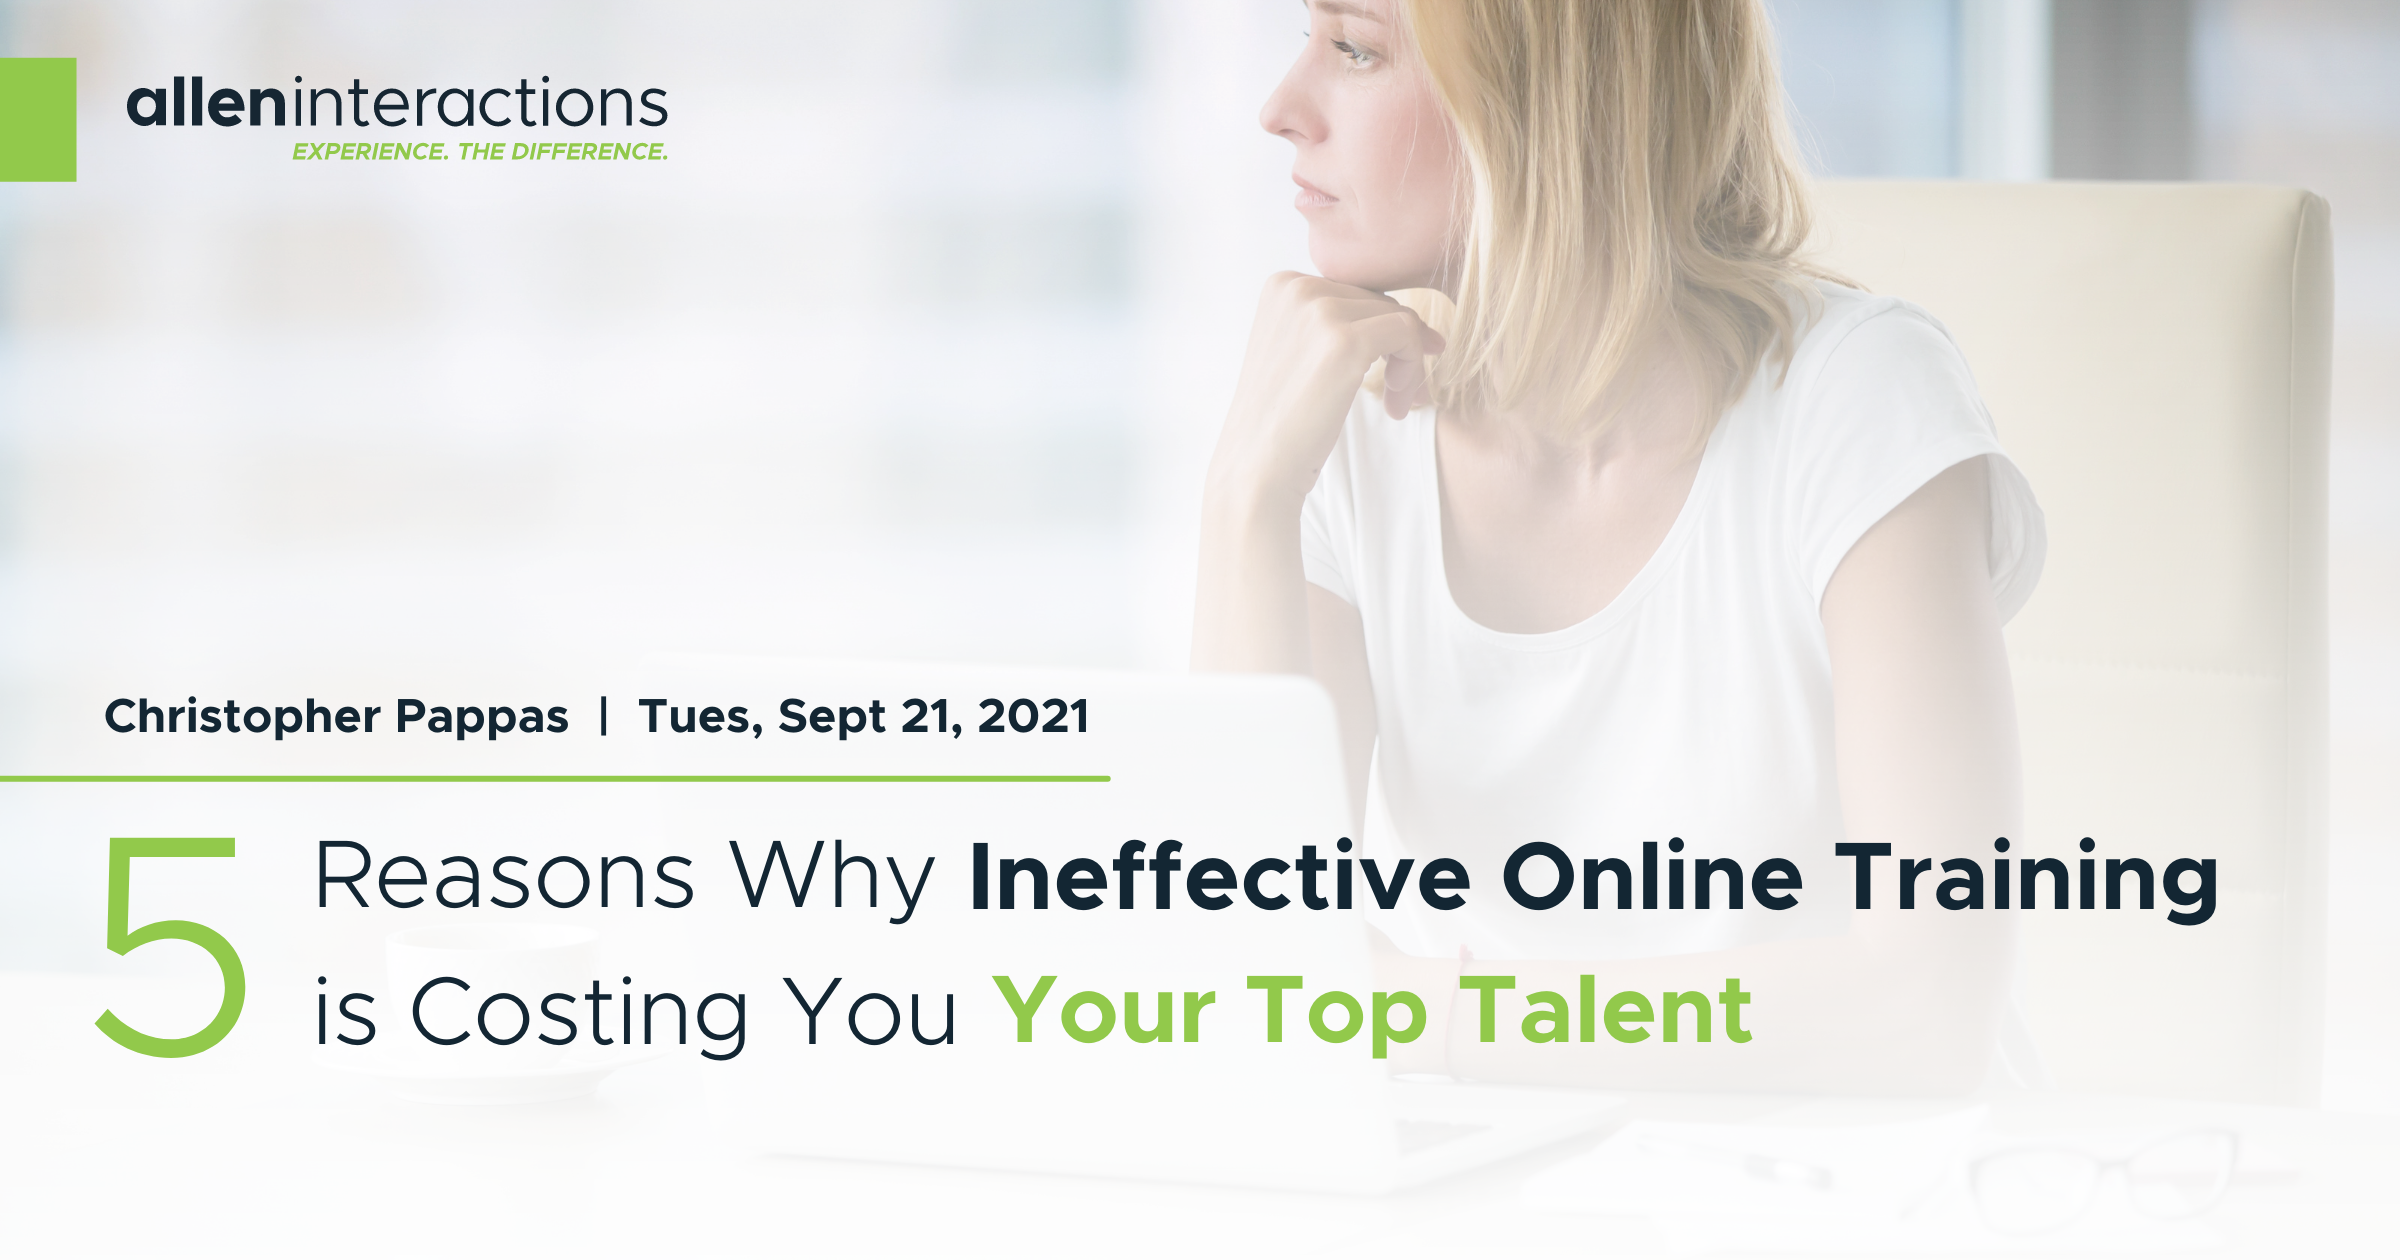 5 Reasons Why Ineffective Online Training is Costing You Your Top Talent